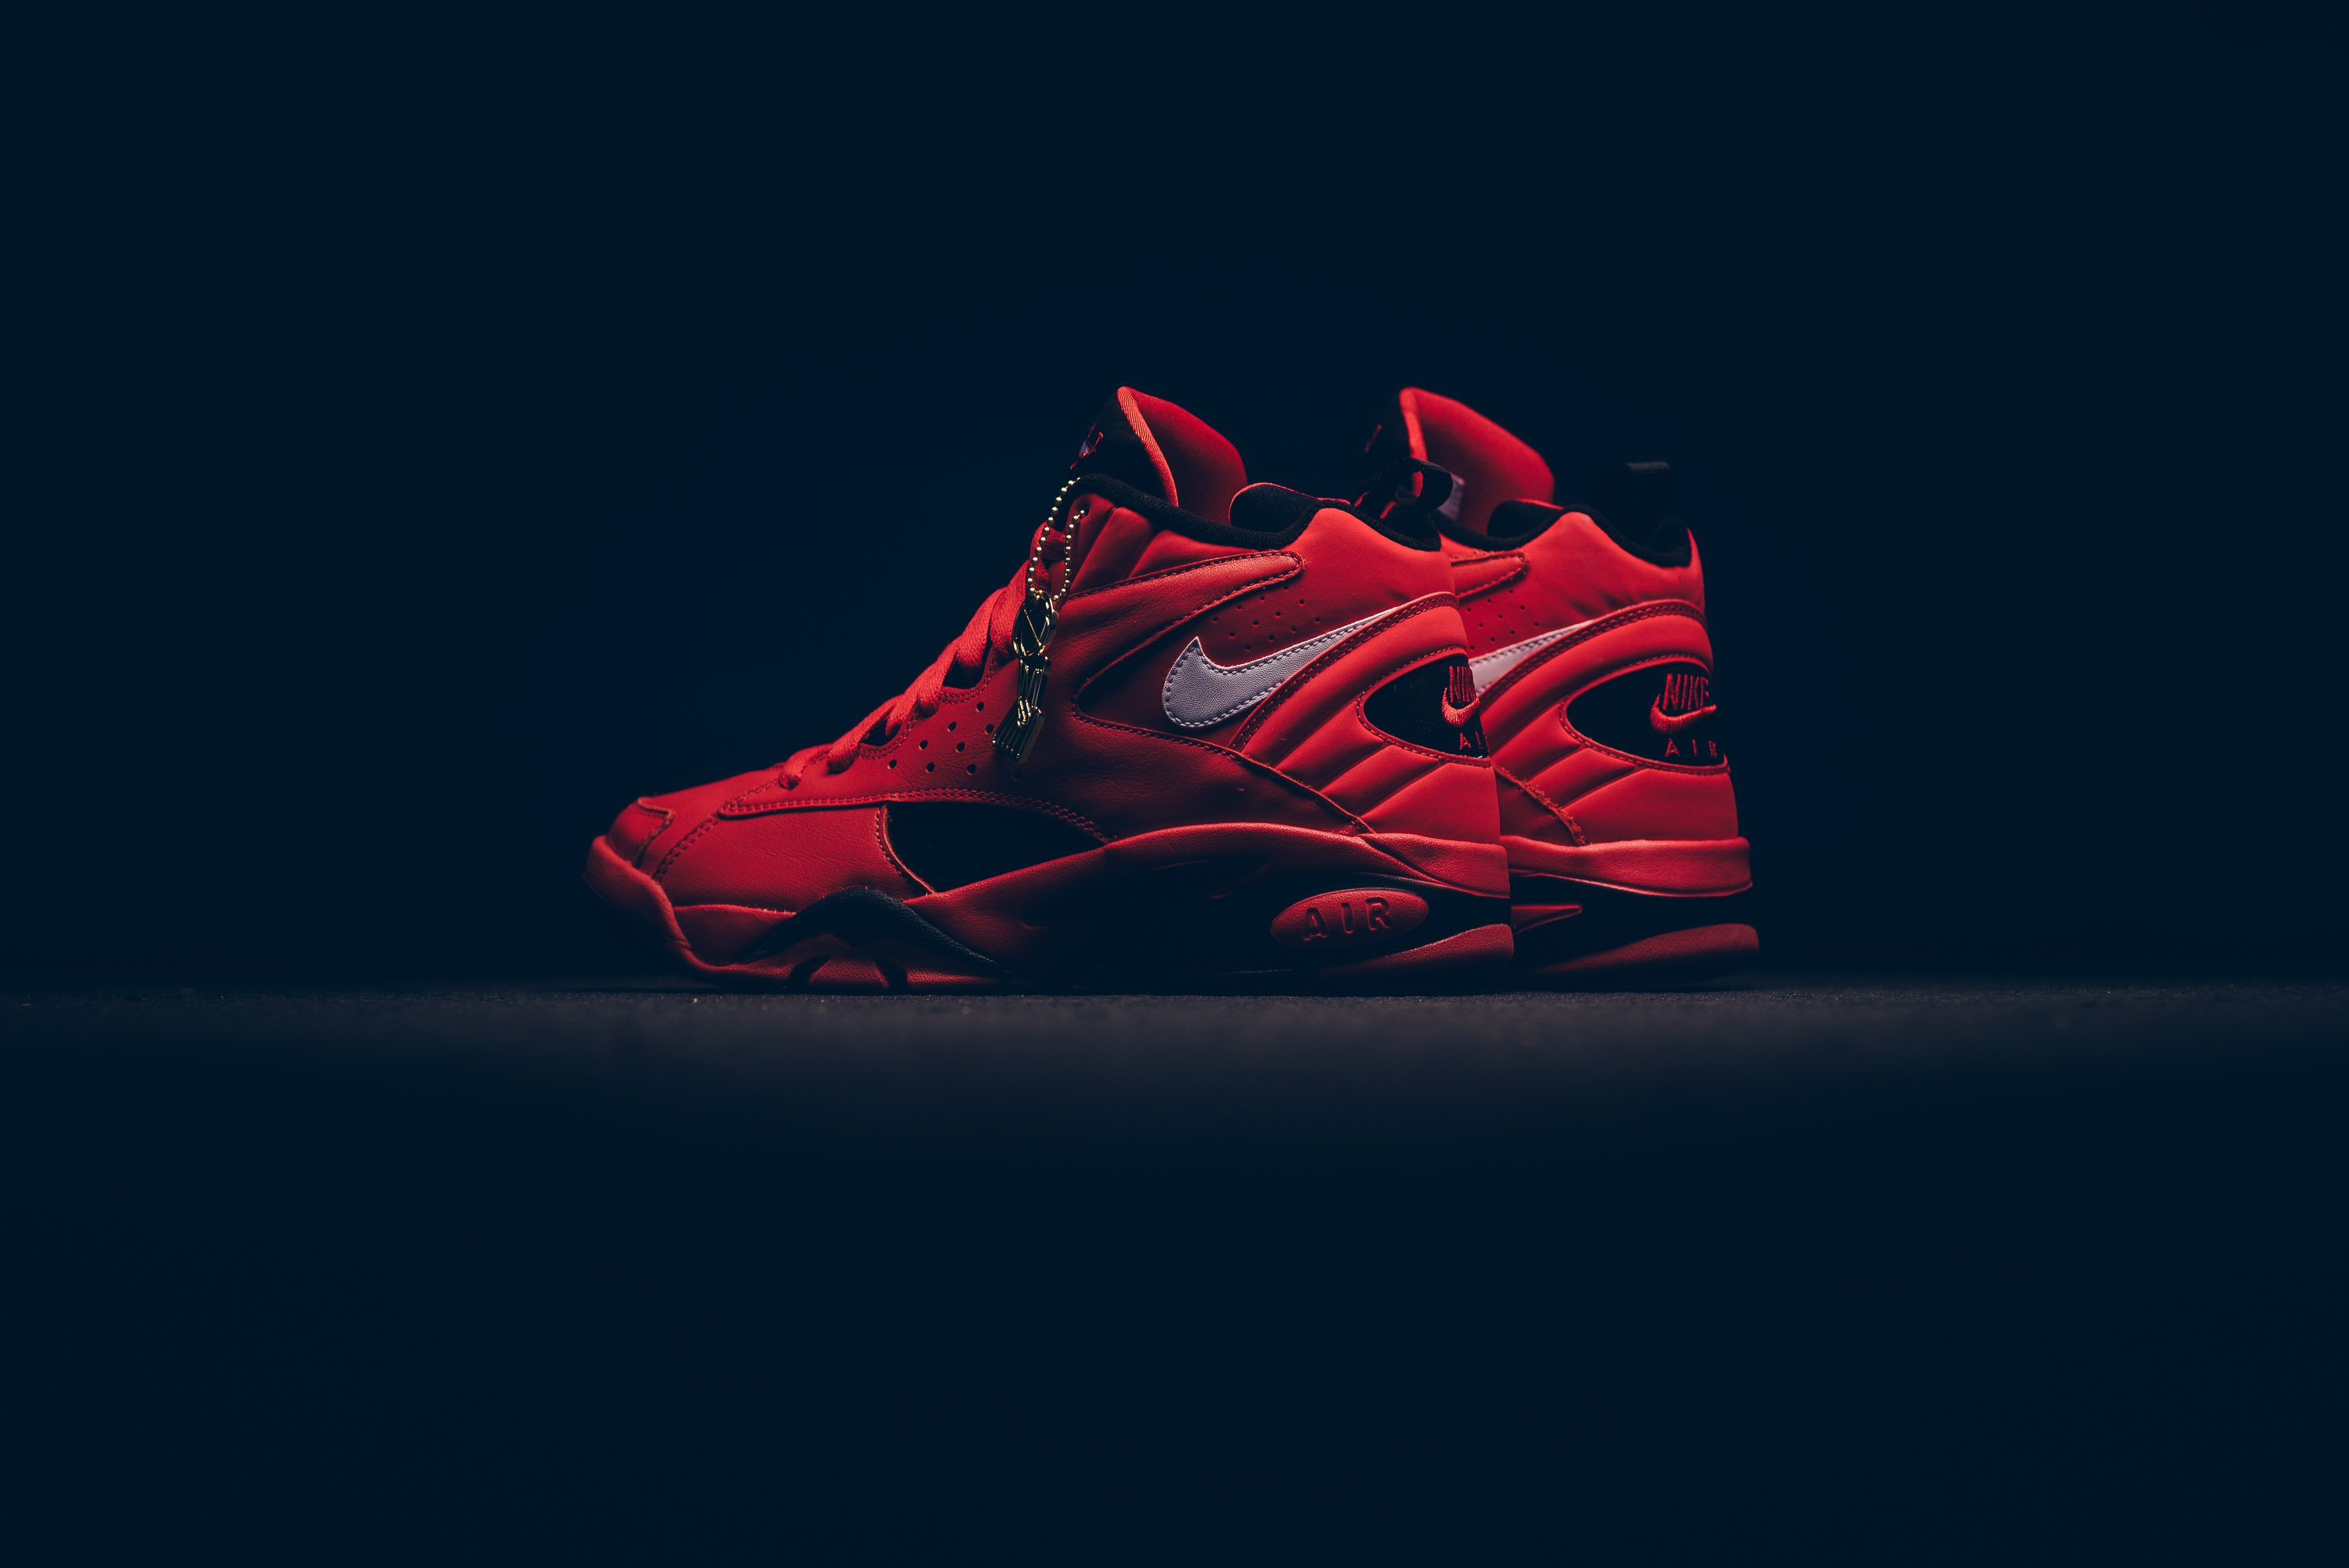 nike_air_maestro_ii_qs_university_red-white-black_aj9281-600_sneaker_politics_2